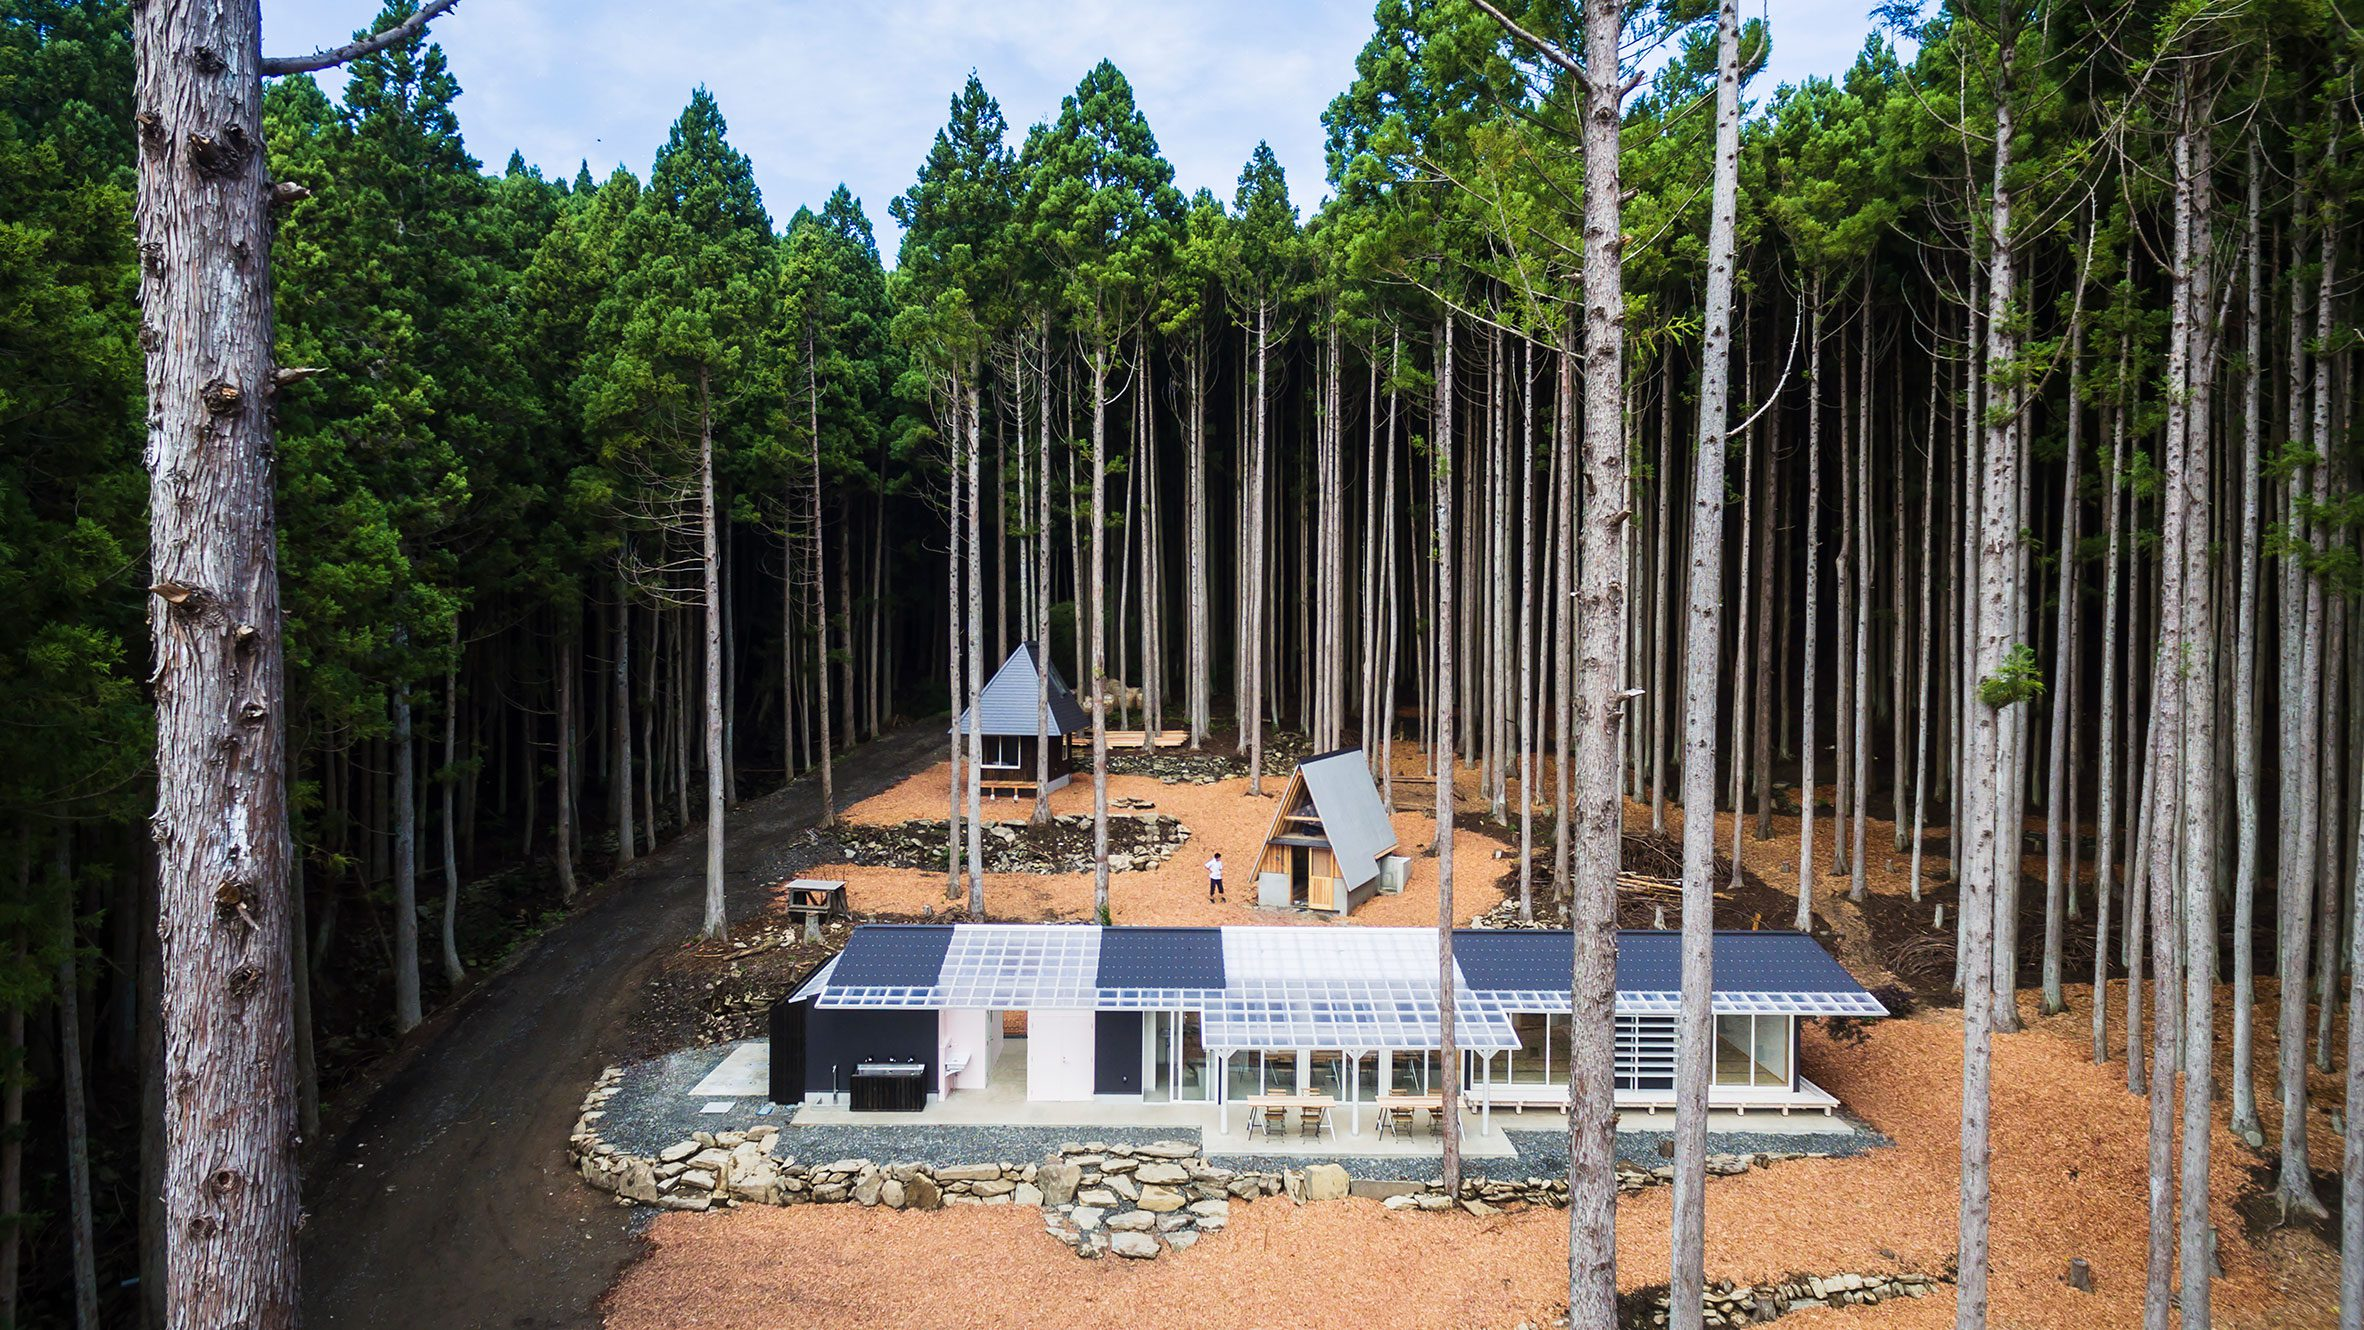 Building in Momonoura Village by Atelier Bow-Wow